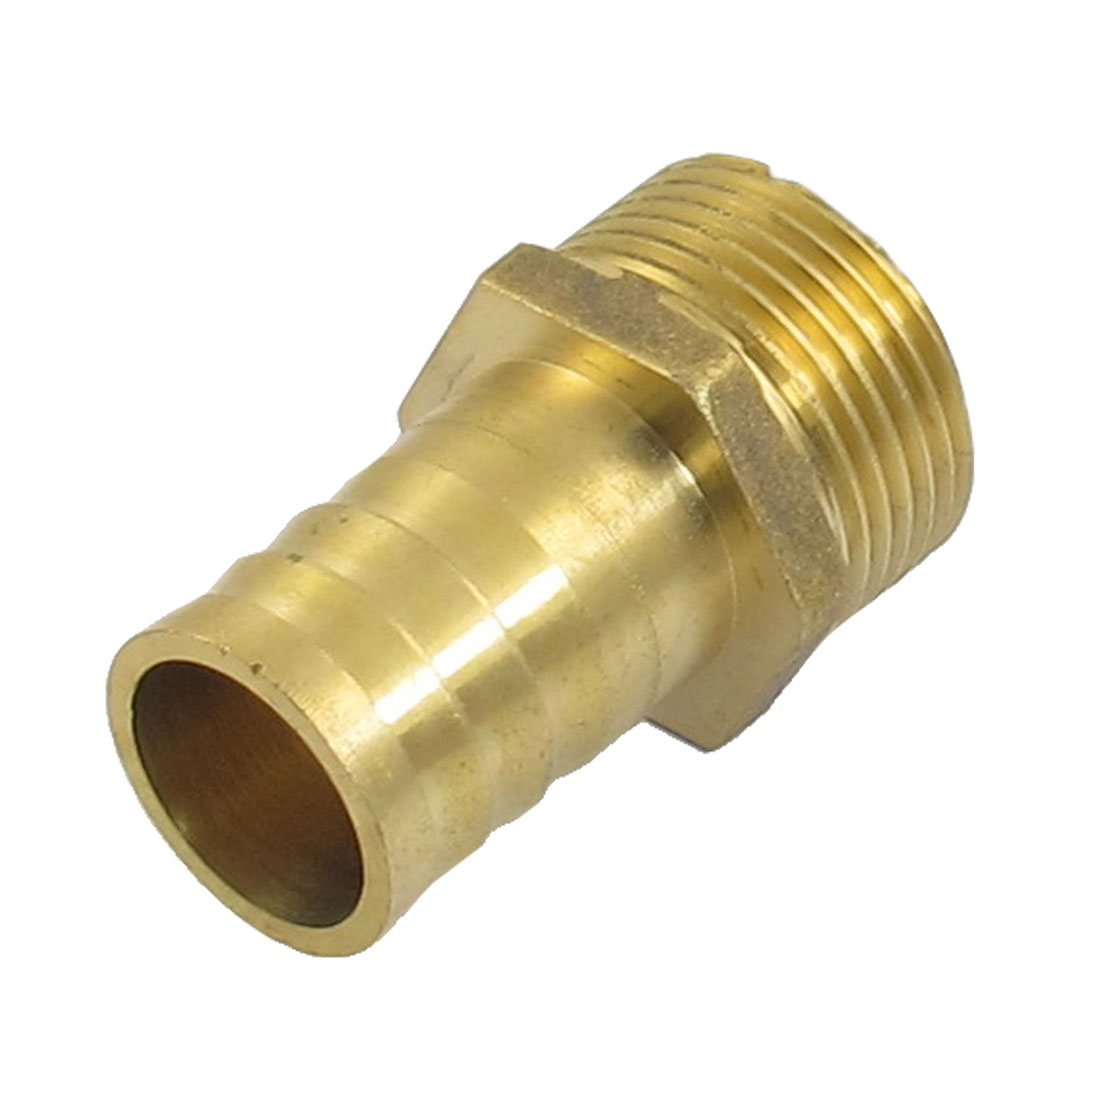 "Gold Tone Brass 25mm Fuel Gas Hose Barb 1"" Male Thread Coupling Fitting"